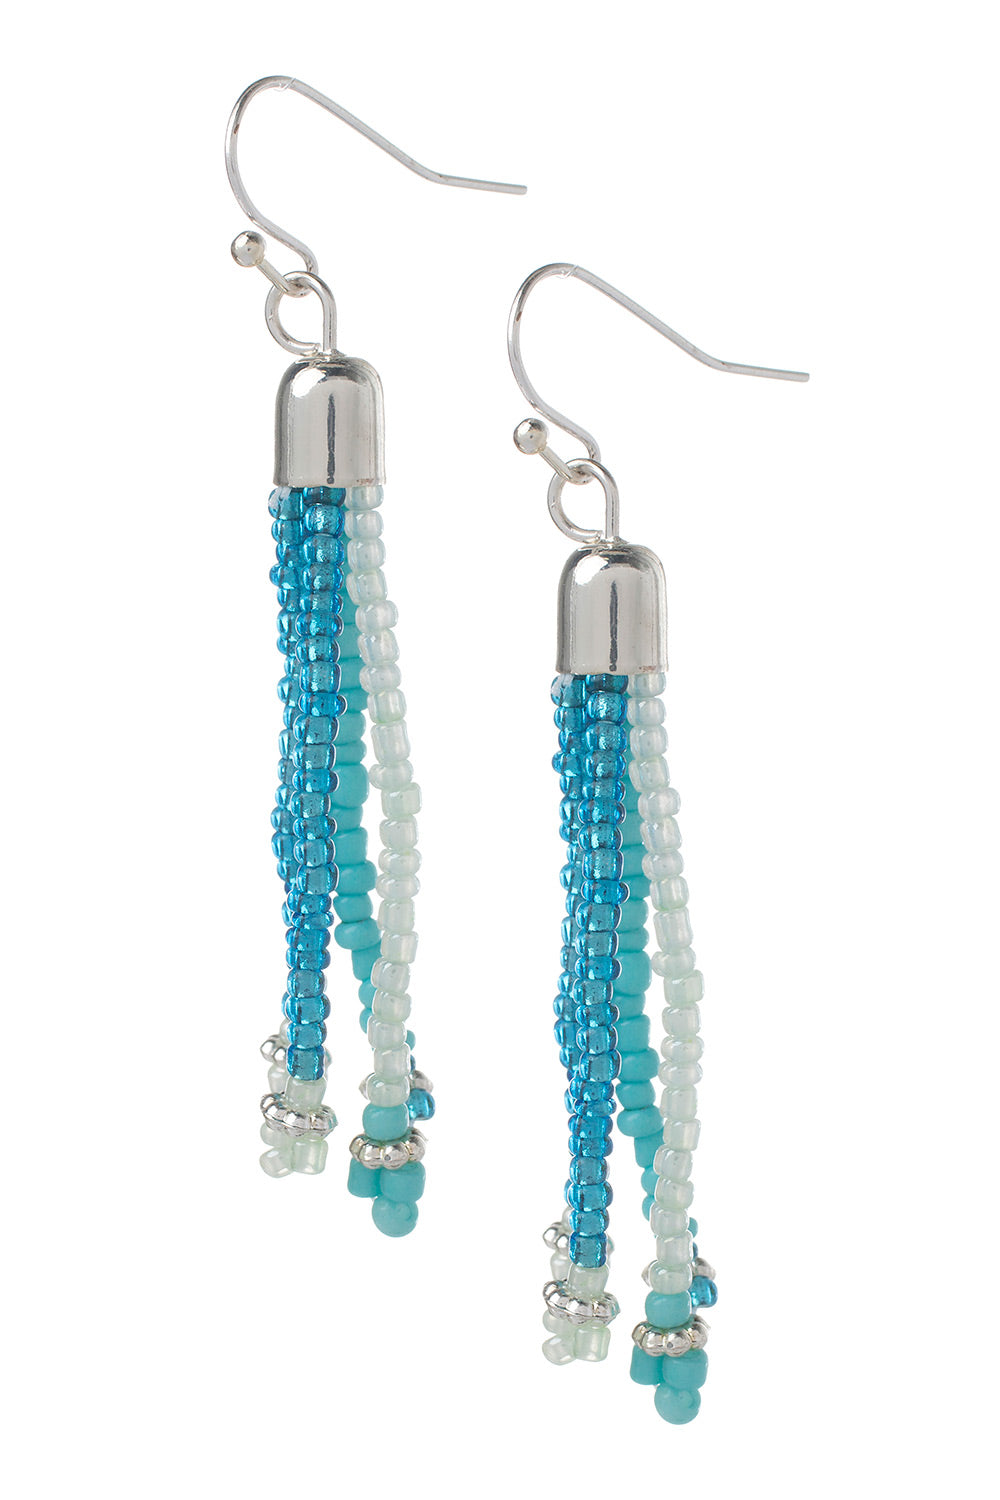 Type 2 Sea Foam Earrings